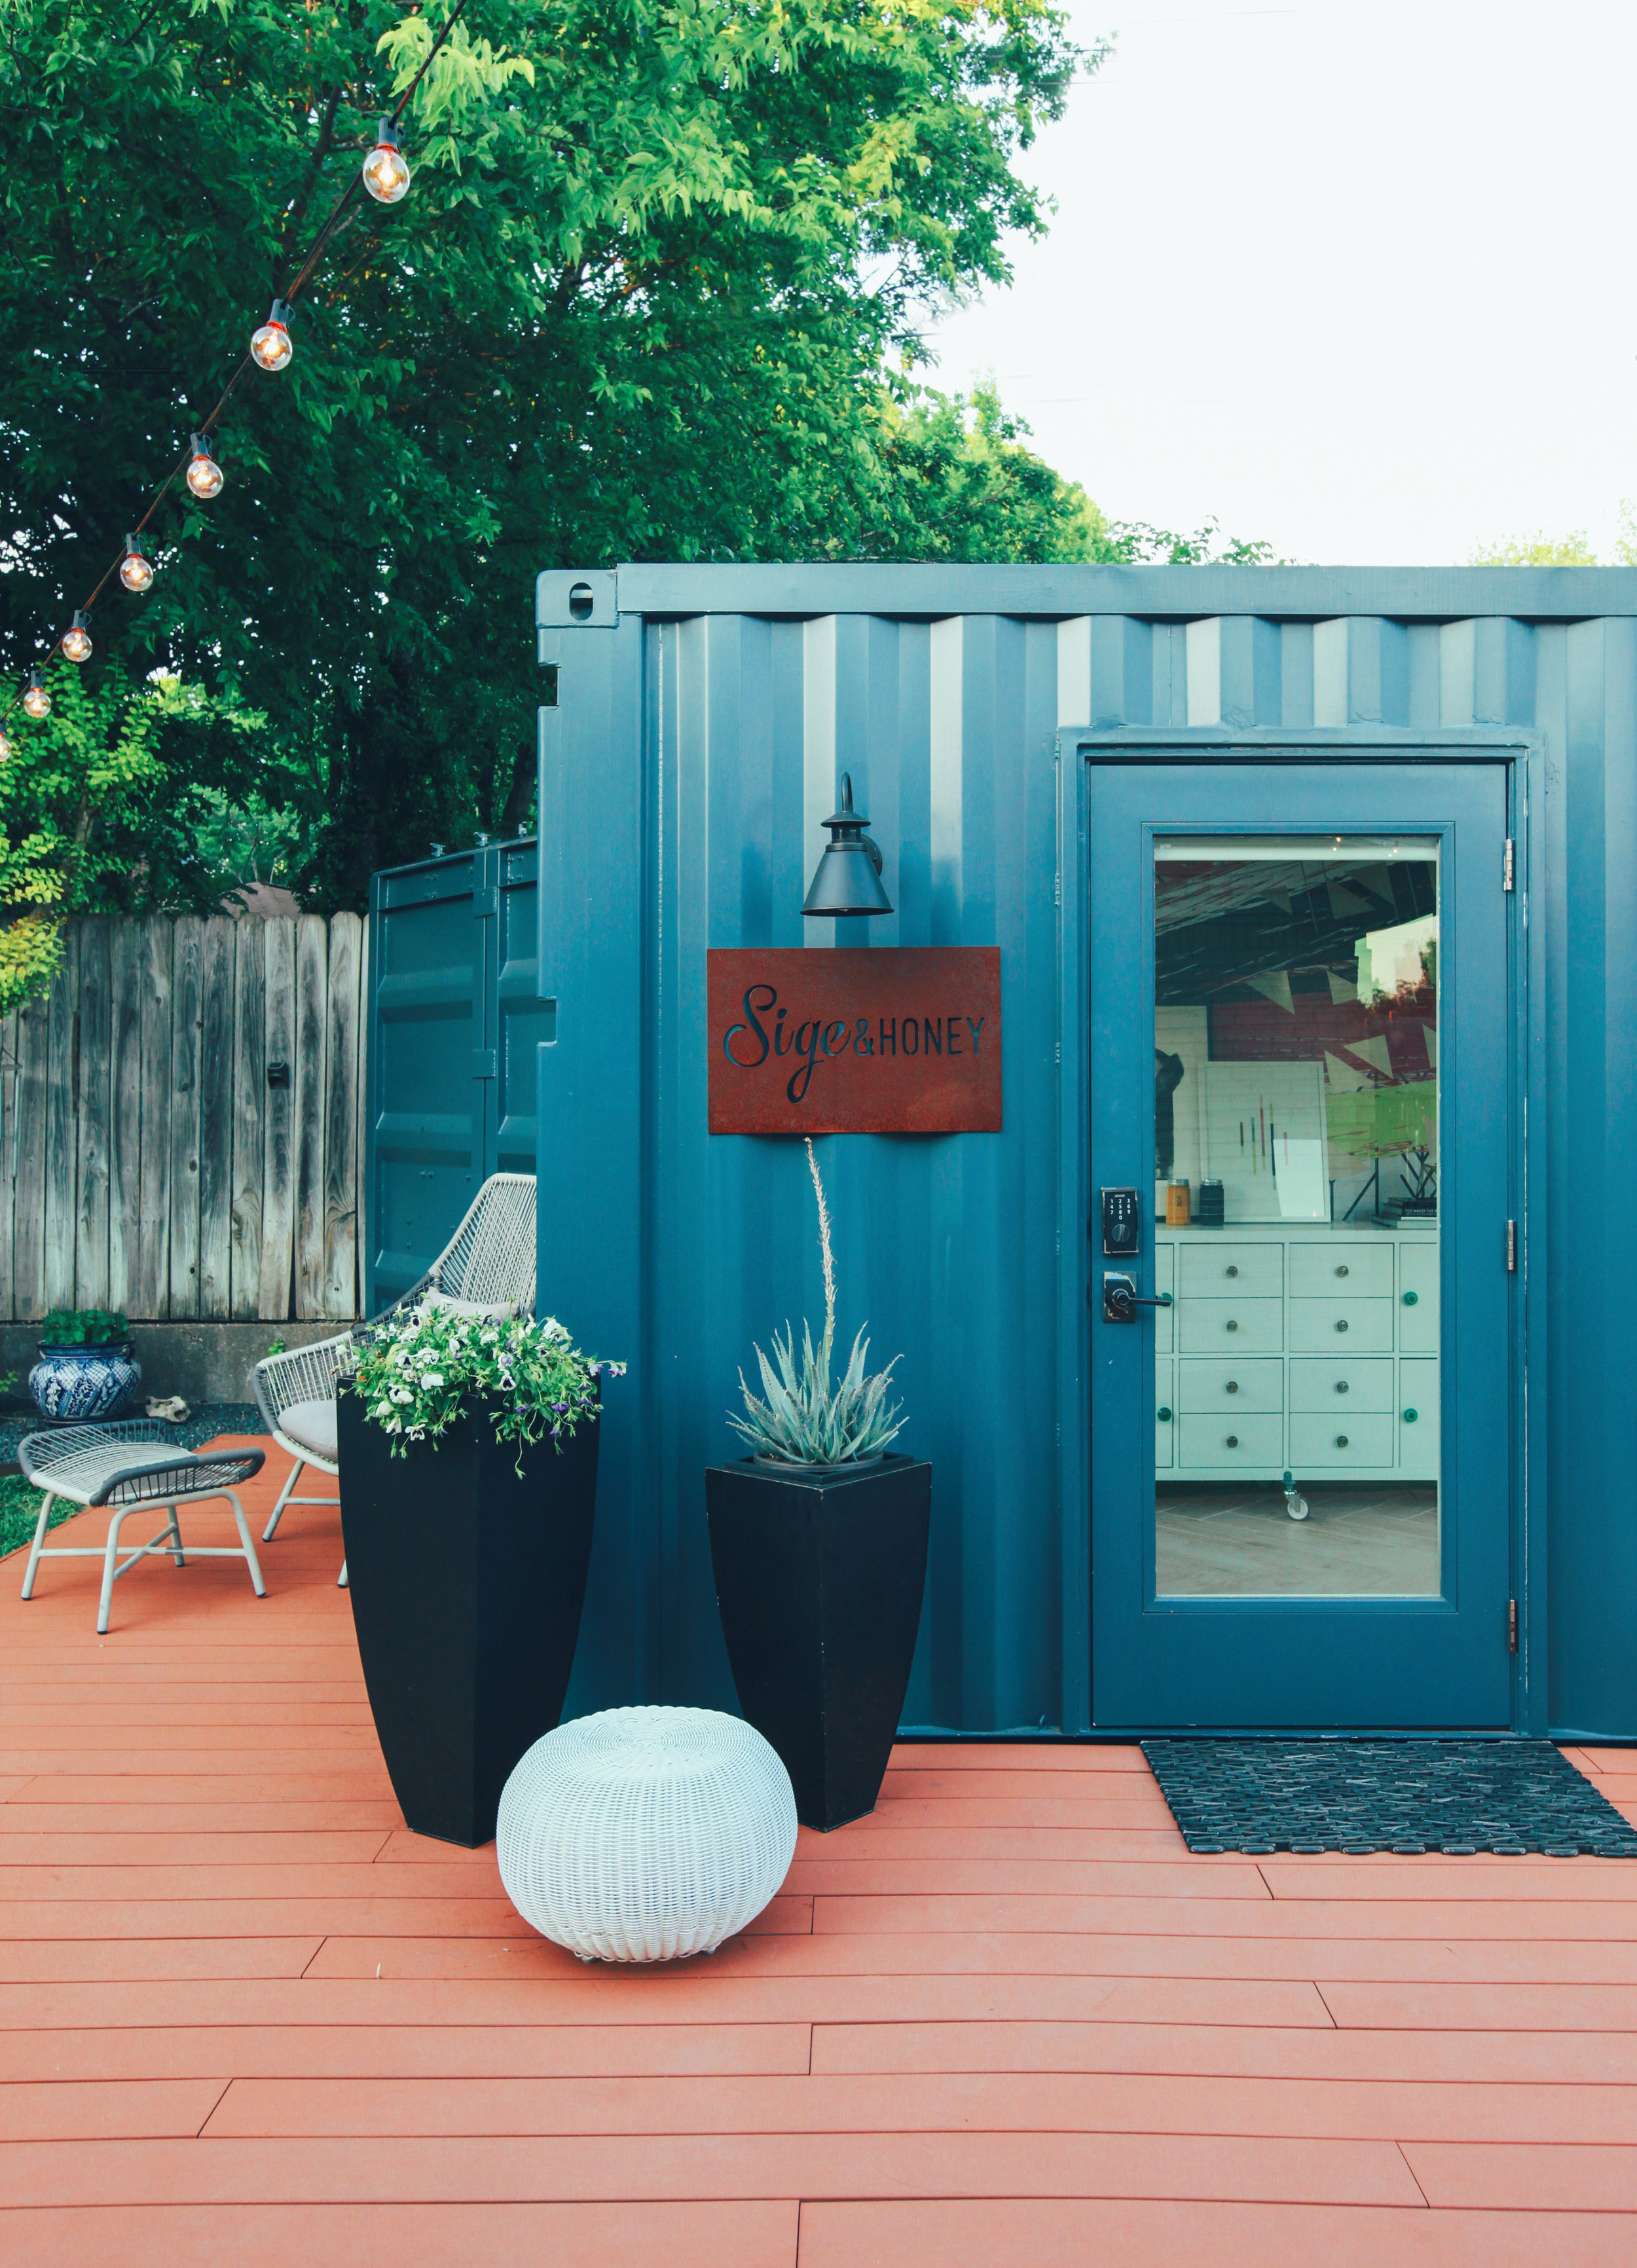 Shipping container studio featured in Austin Monthly